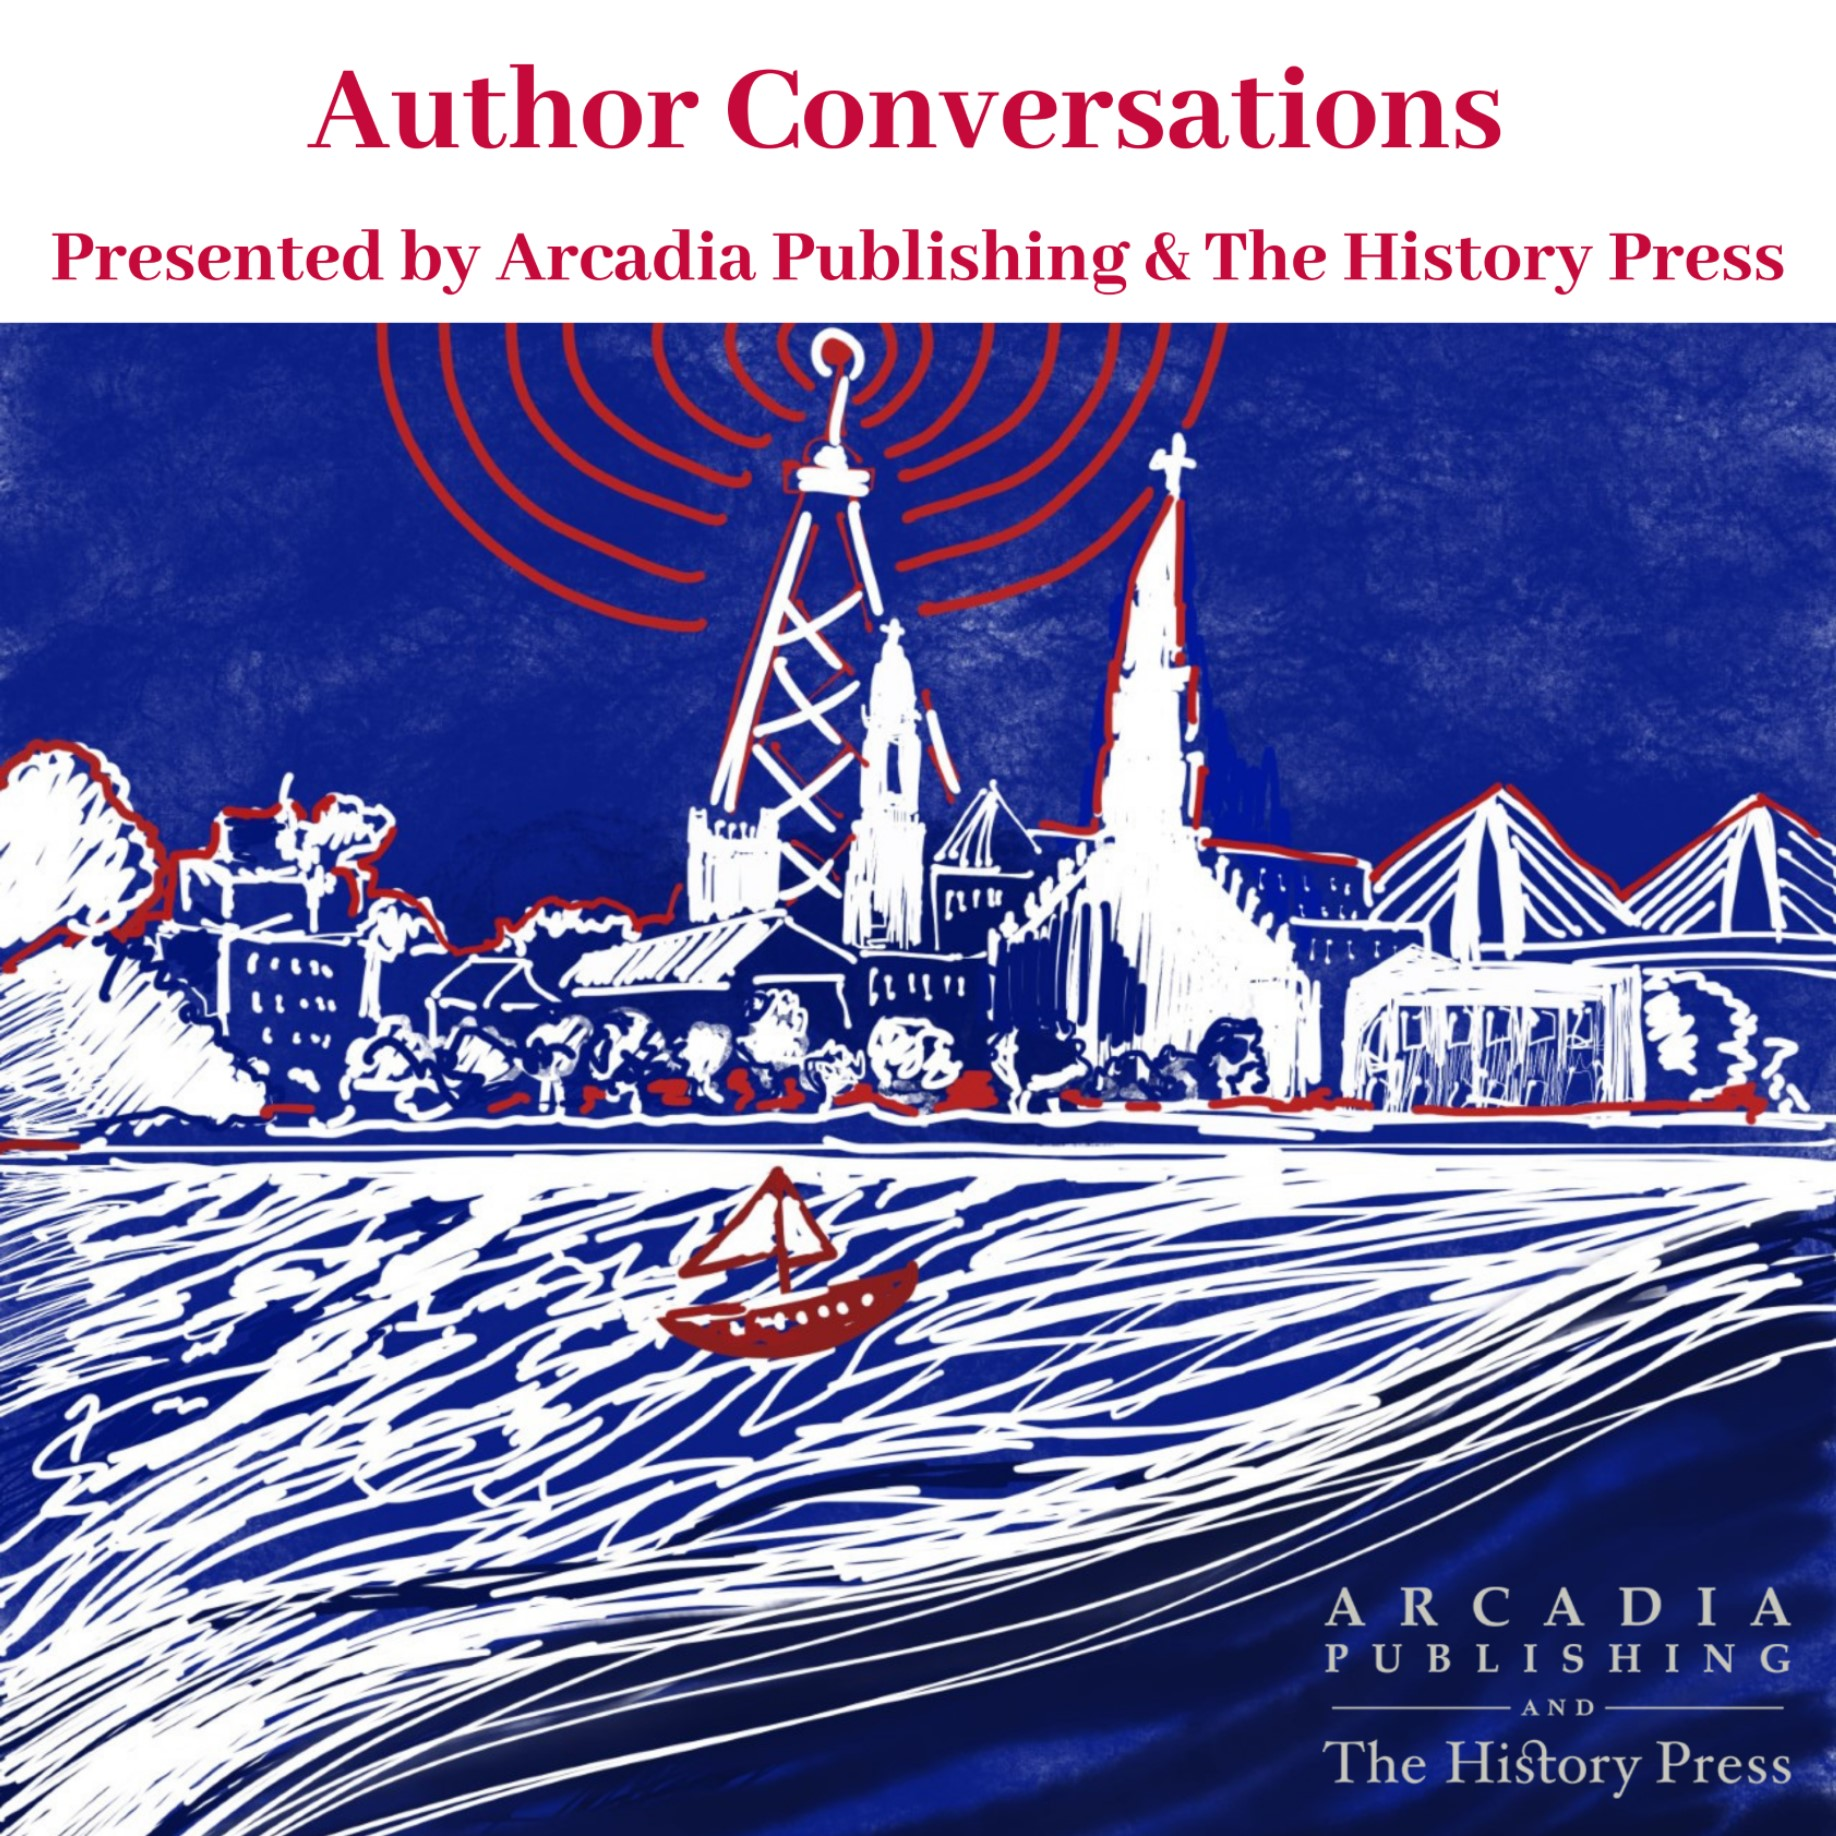 Author Conversations presented by Arcadia Publishing and The History Press